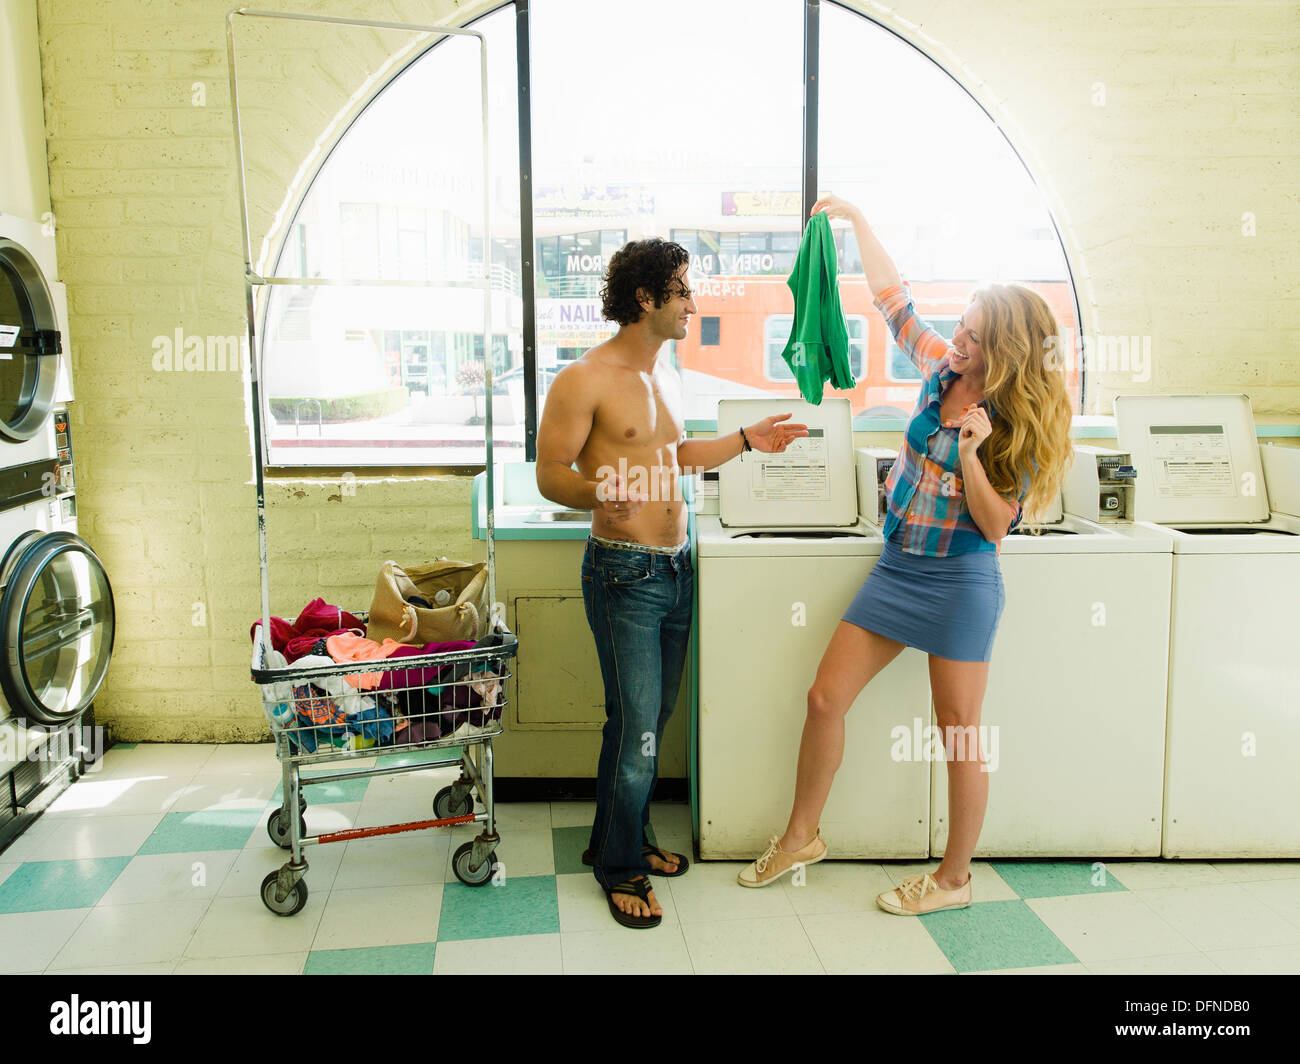 A pretty woman hangs a T-shirt before a bared body young man in San Diego coin laundromat. - Stock Image